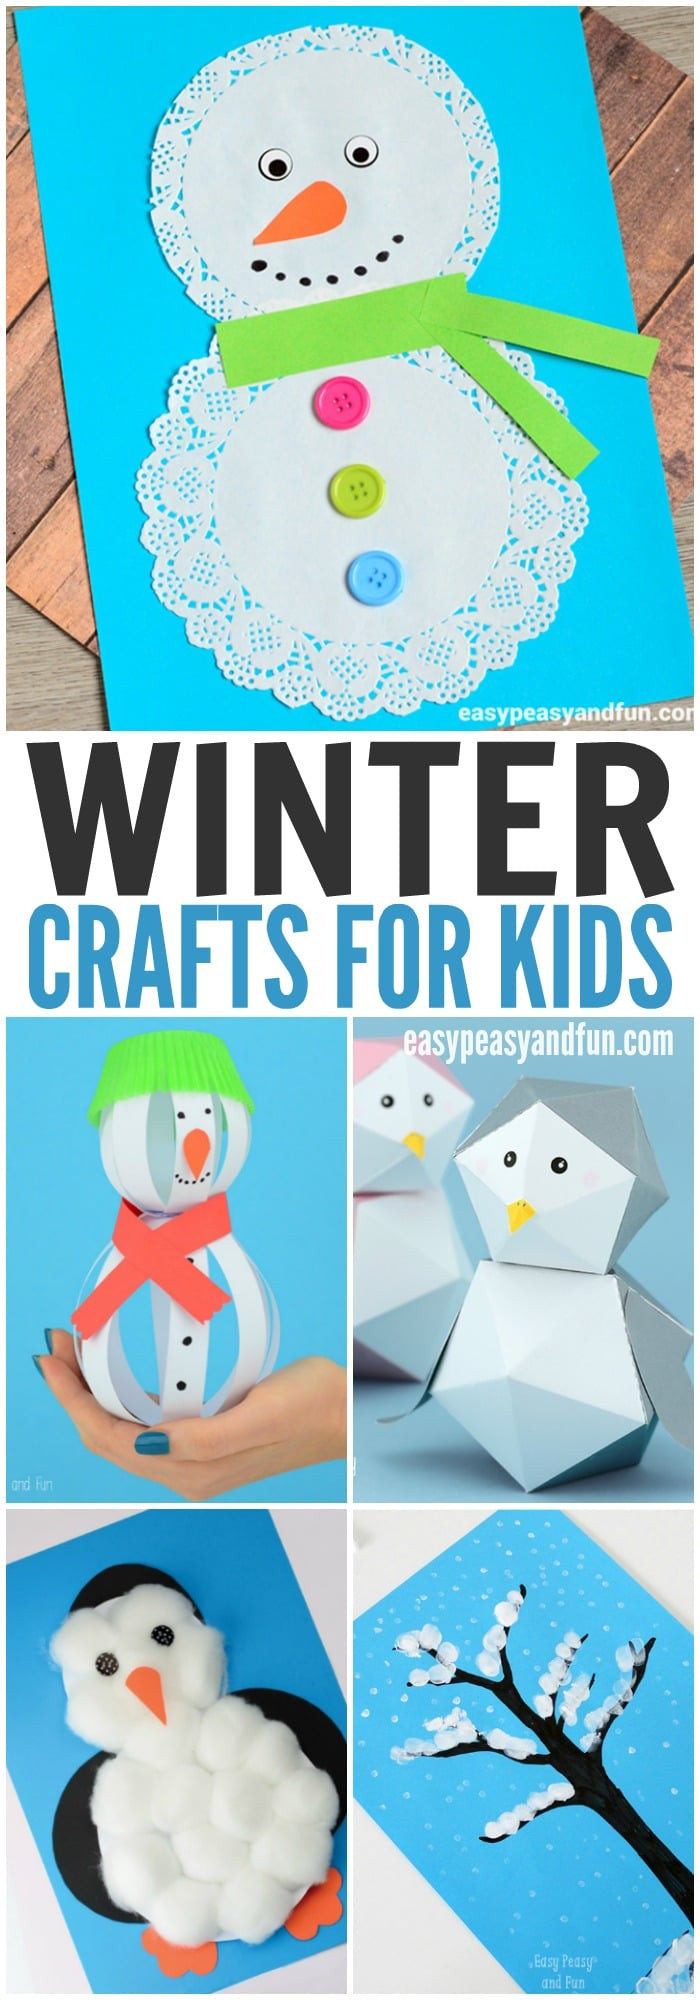 Best ideas about Winter Craft Idea For Kids . Save or Pin Winter Crafts for Kids to Make Easy Peasy and Fun Now.